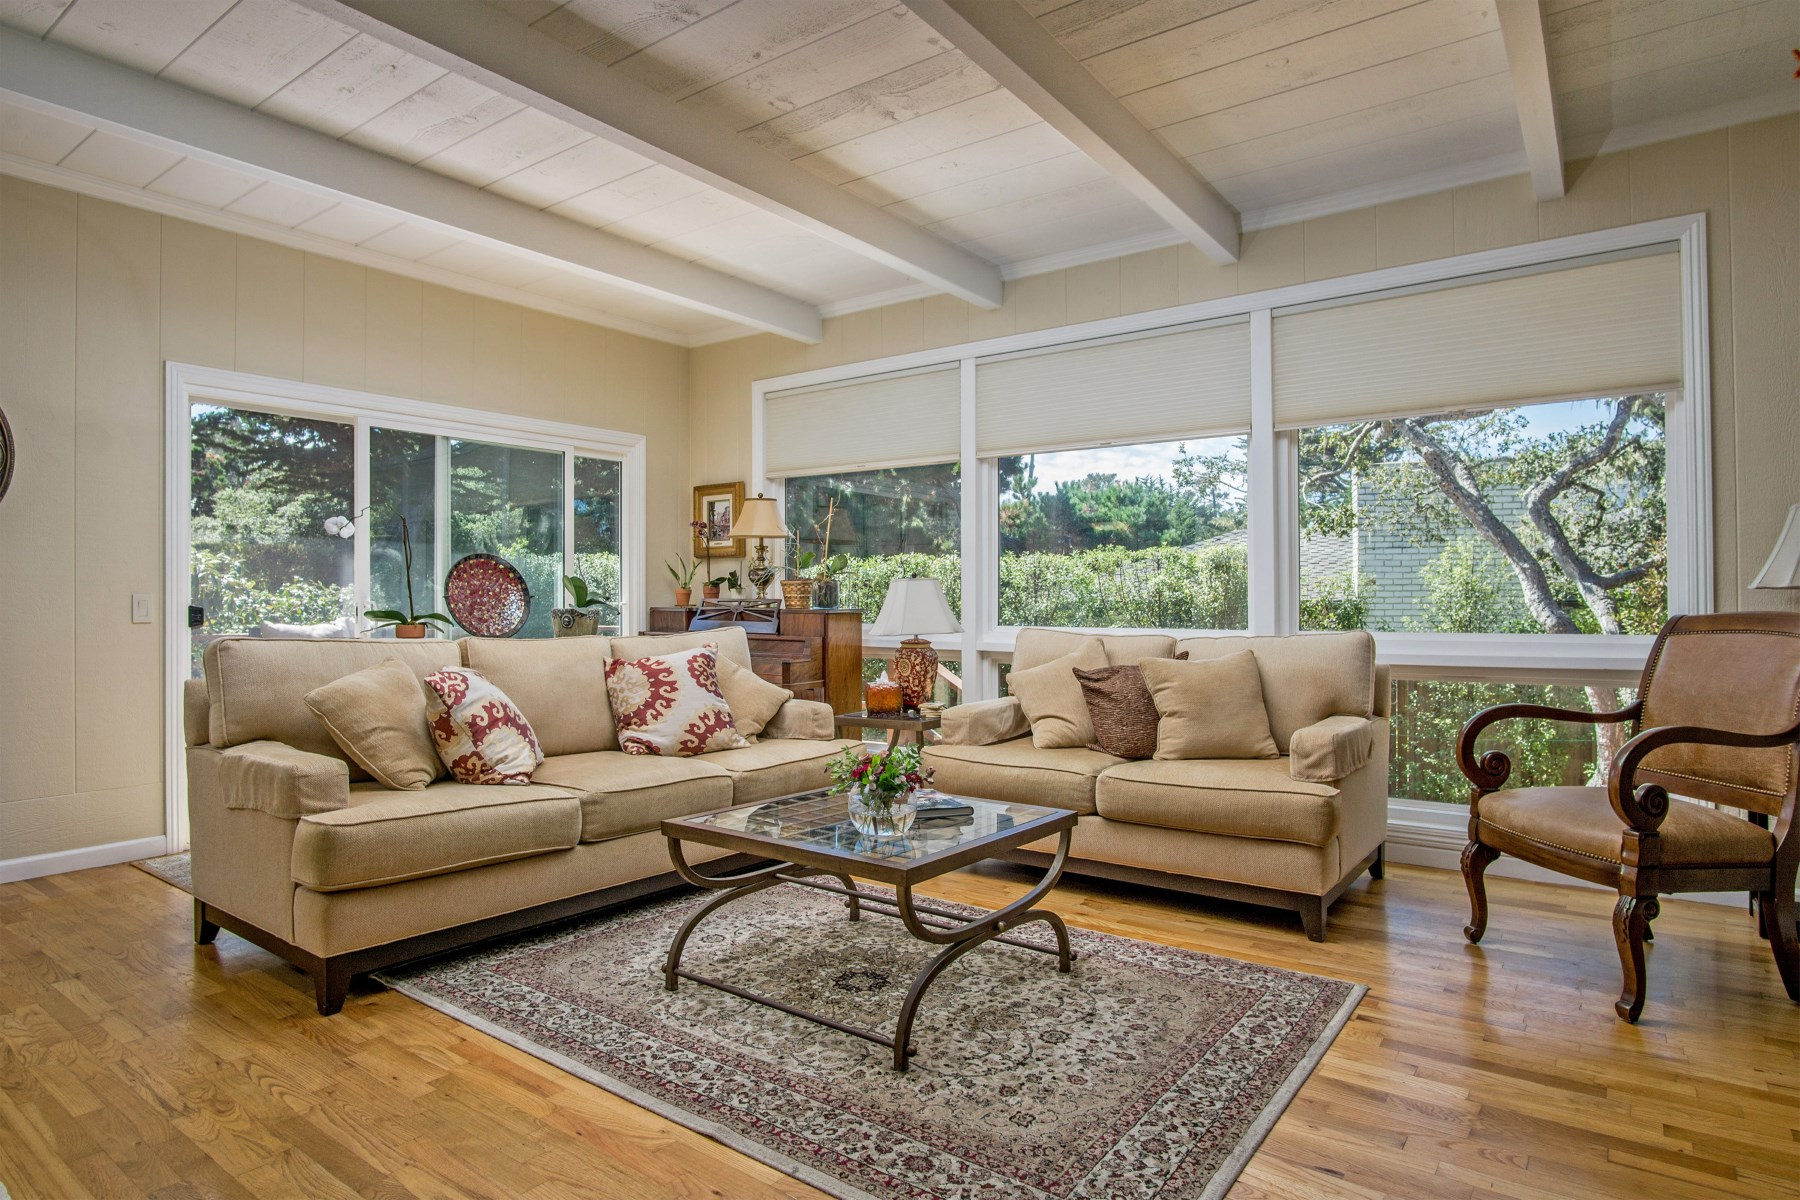 Single Family Home for Sale at Just a Stroll Away 2912 Oak Knoll Road Pebble Beach, California, 93953 United States